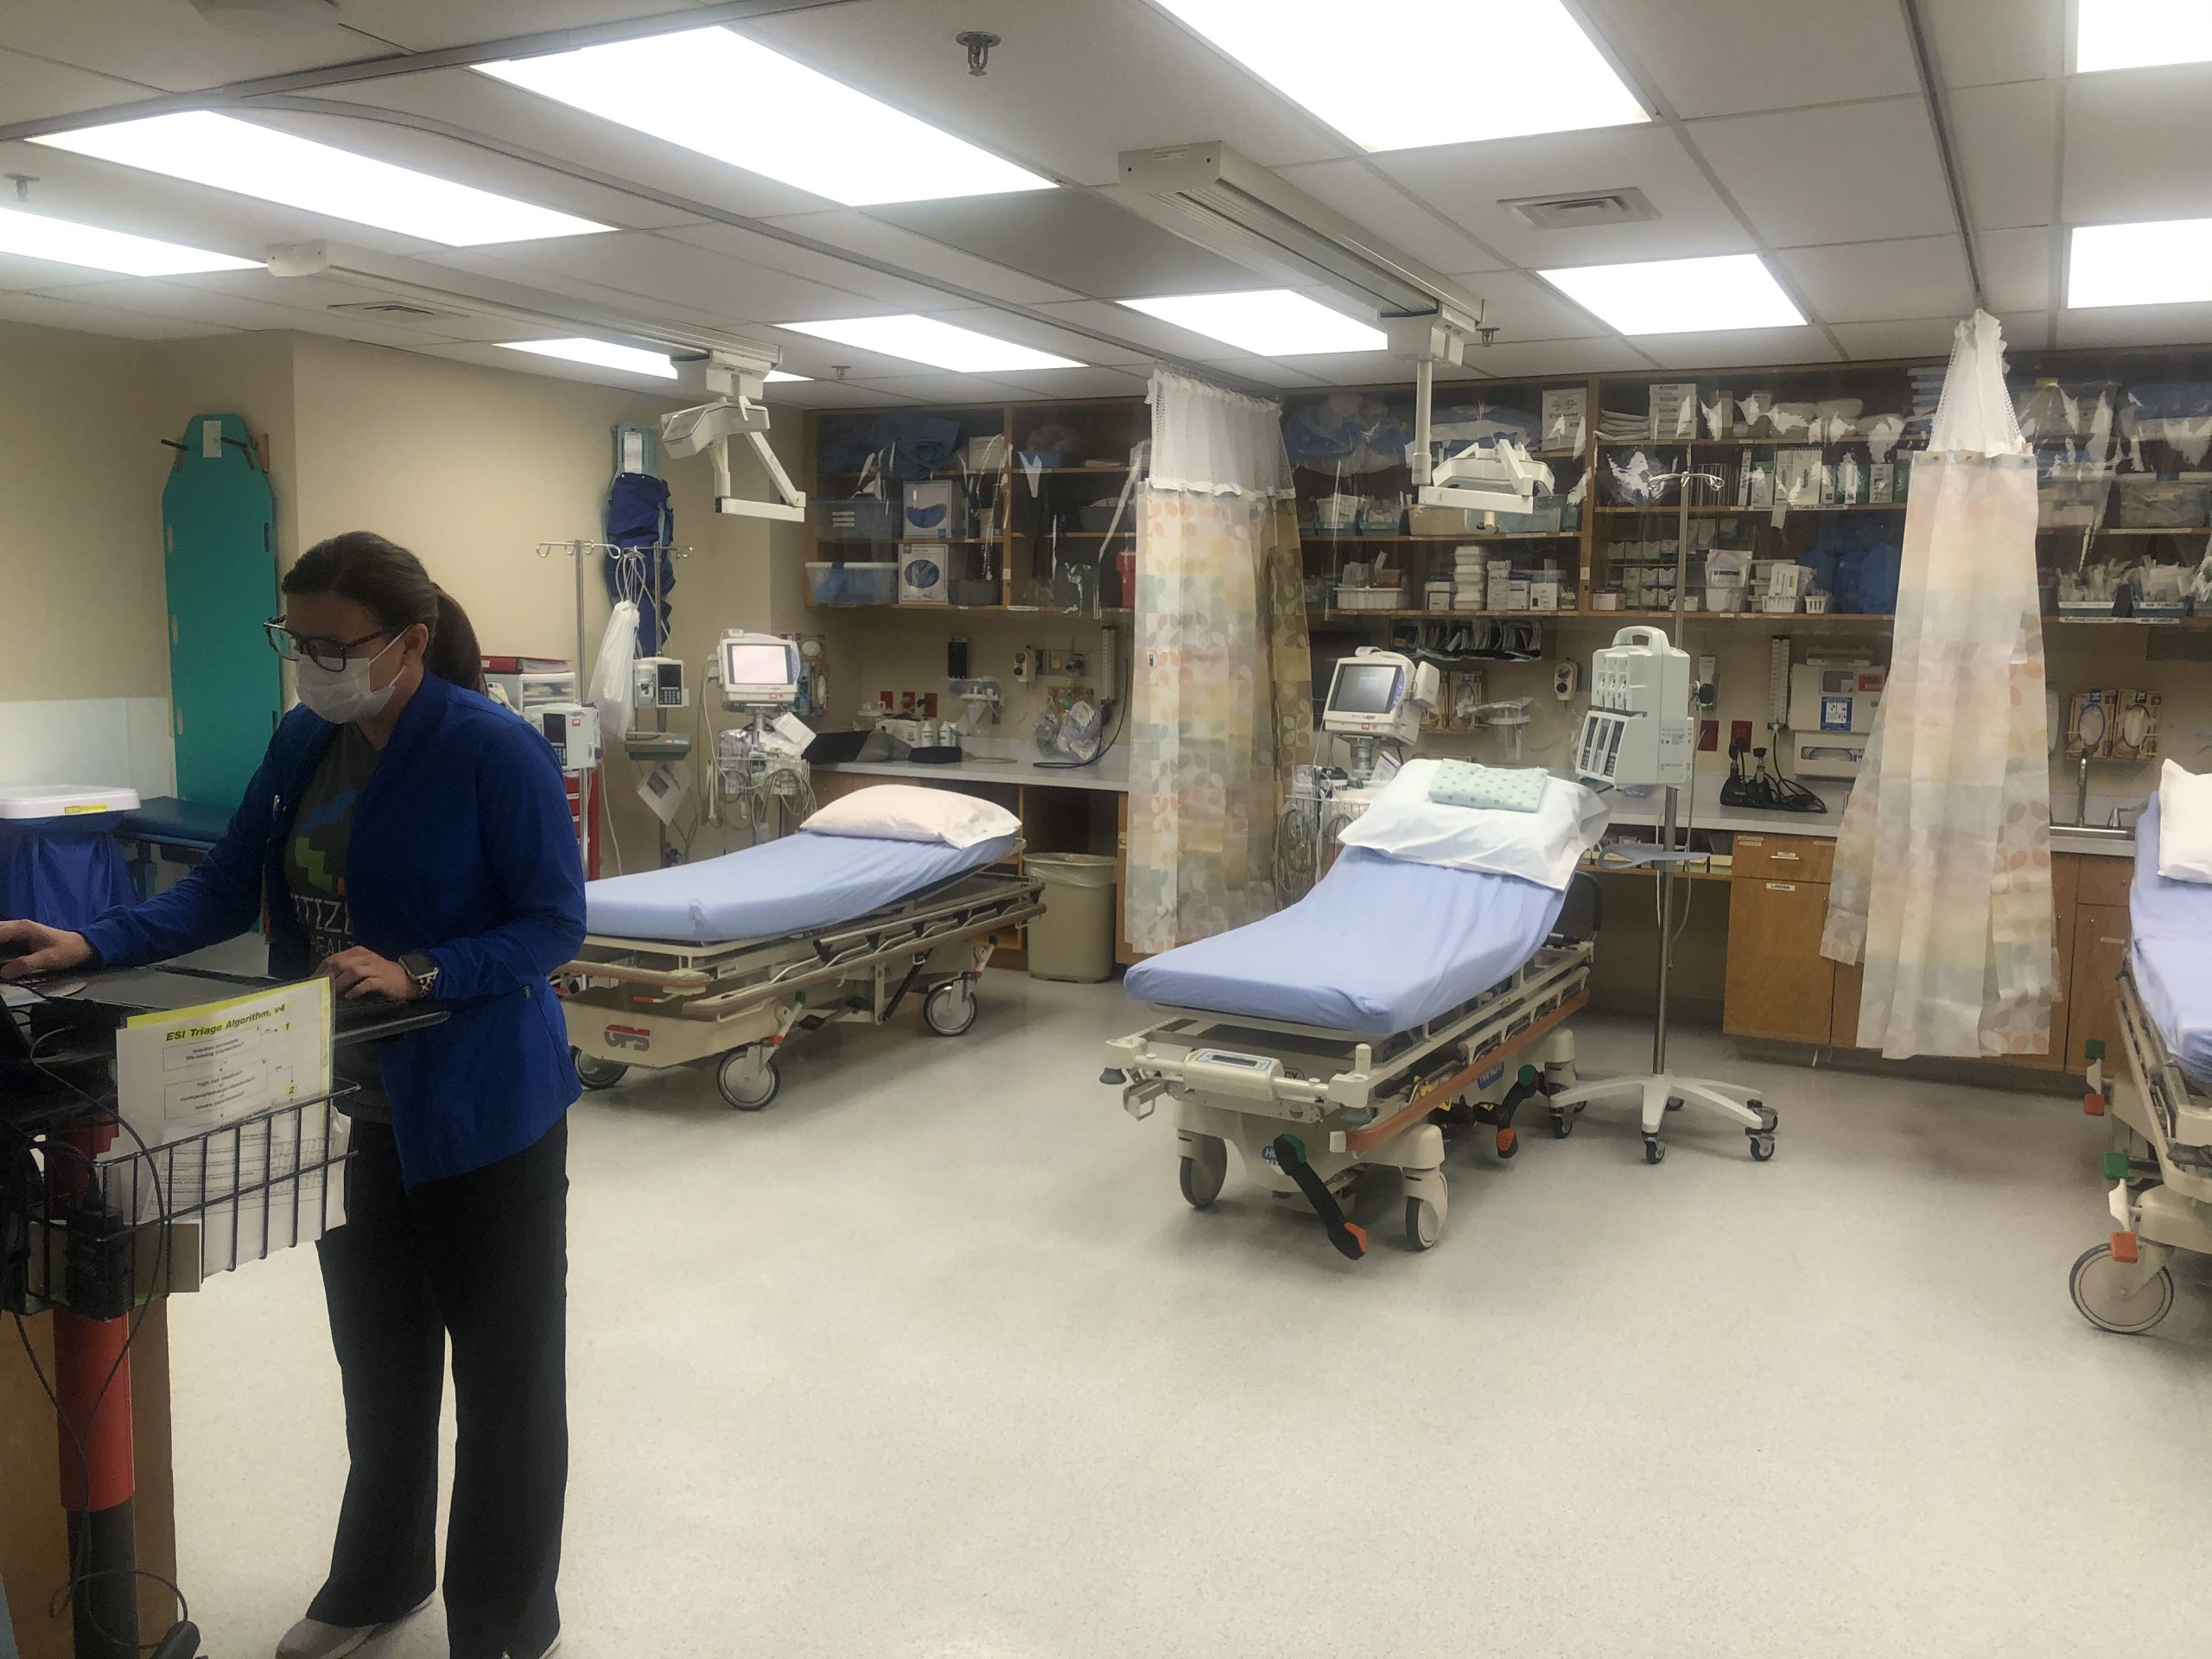 Kansas ERs burdened by worsening mental health crisis, overflow from state hospitals